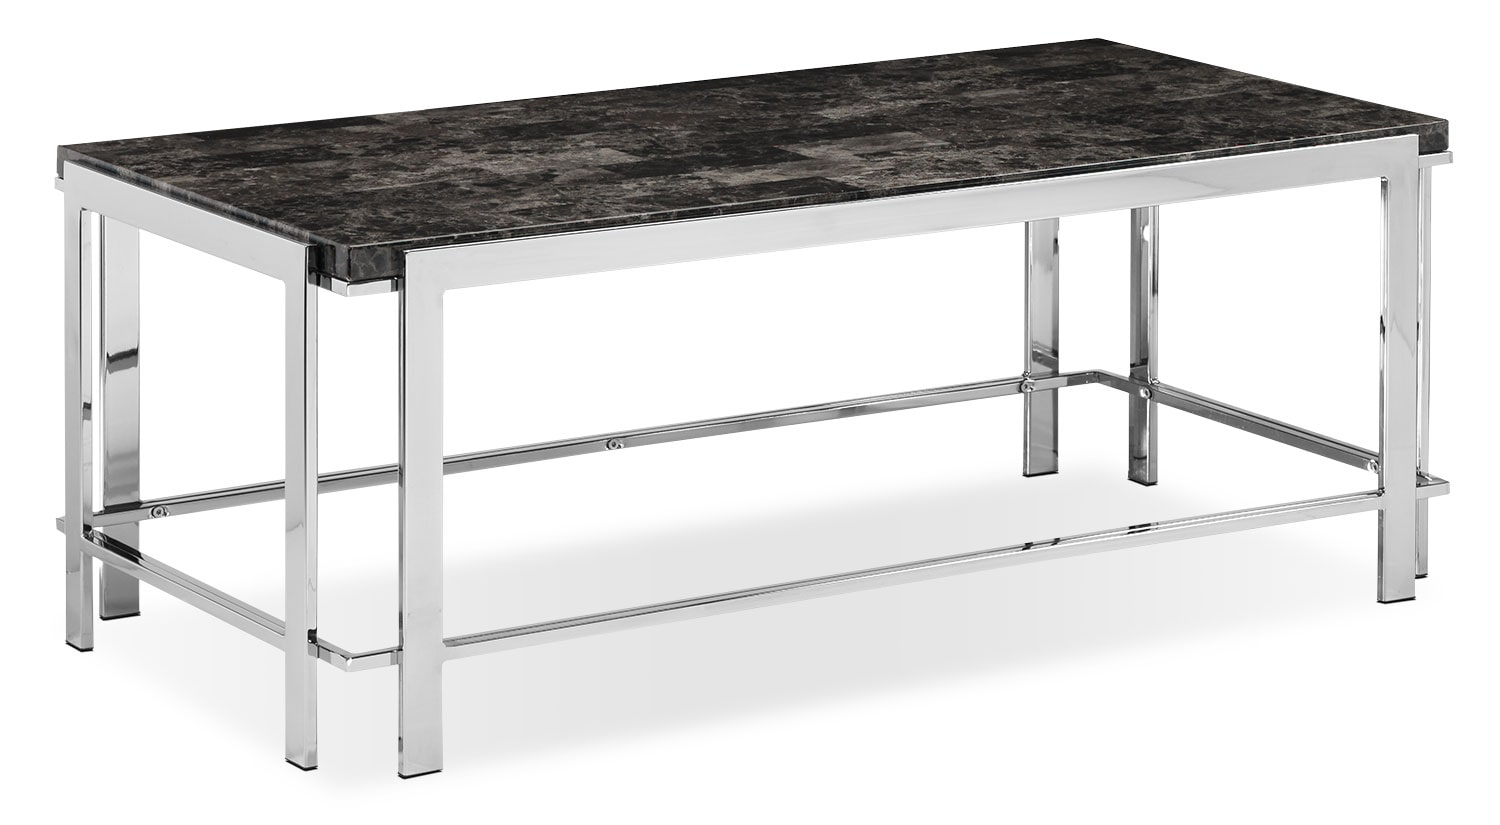 Iris Coffee Table - Chrome and Black